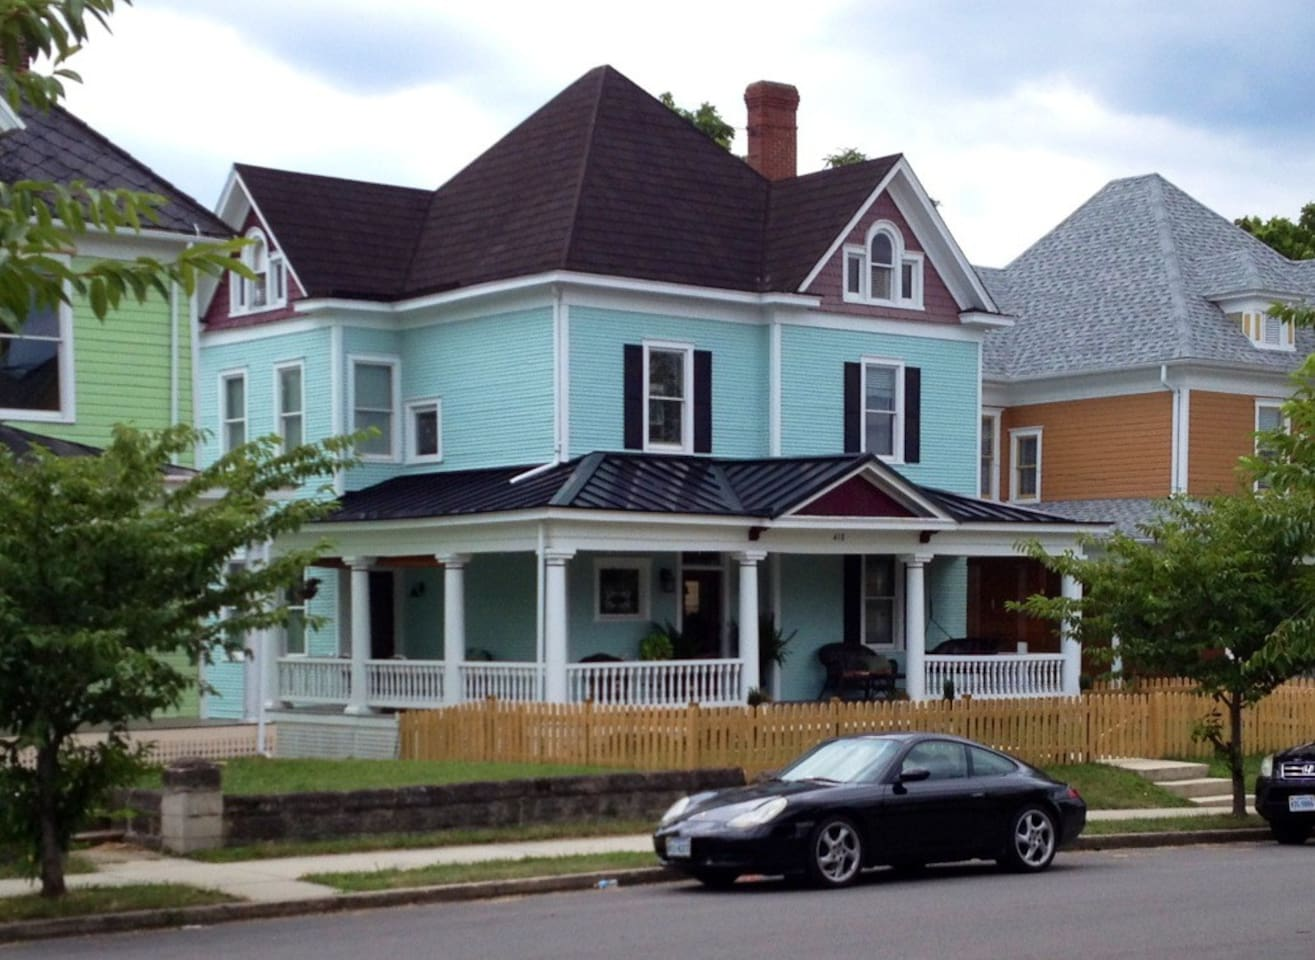 Beautiful Victorian Gallery house on premier block of historic Old Southwest city, Roanoke